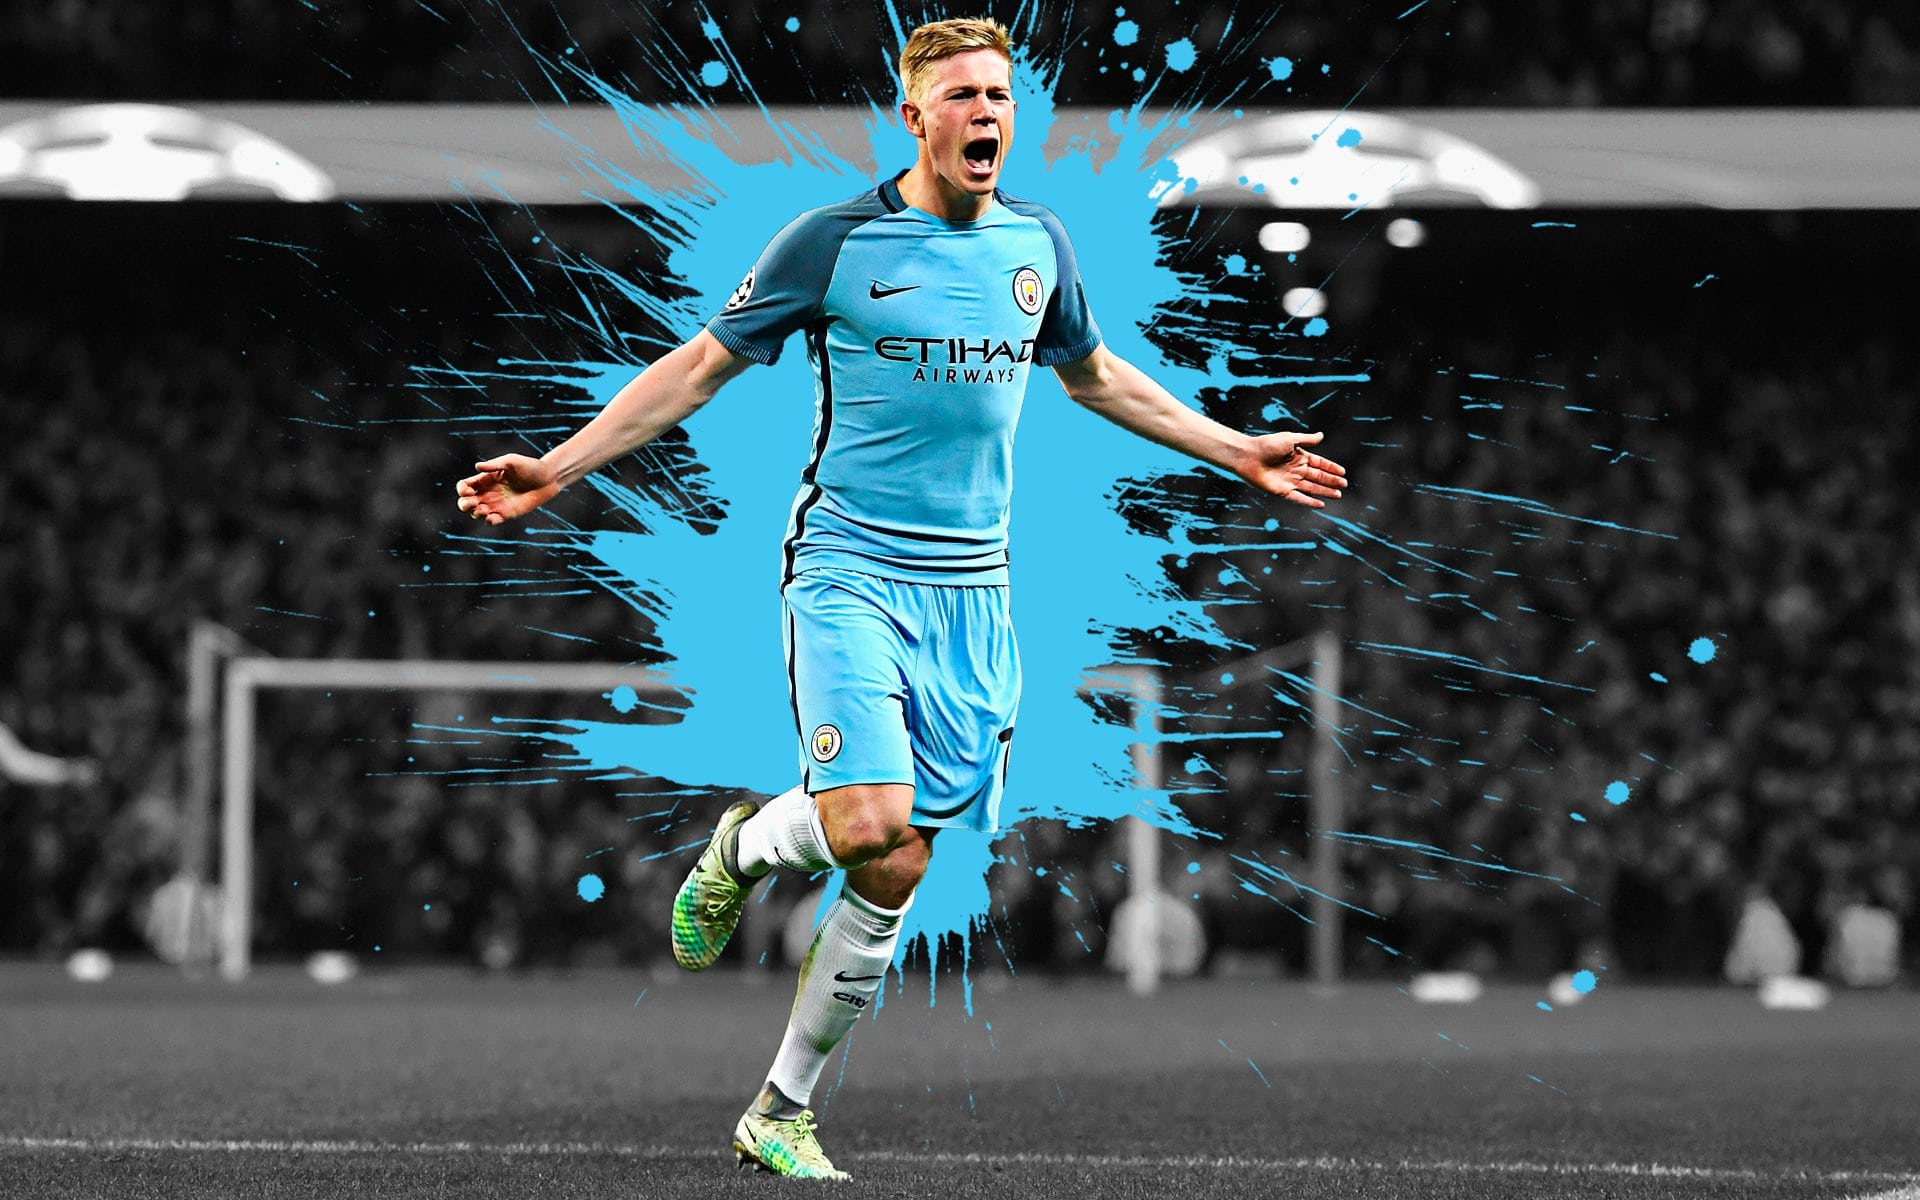 Kevin De Bruyne HD Wallpaper